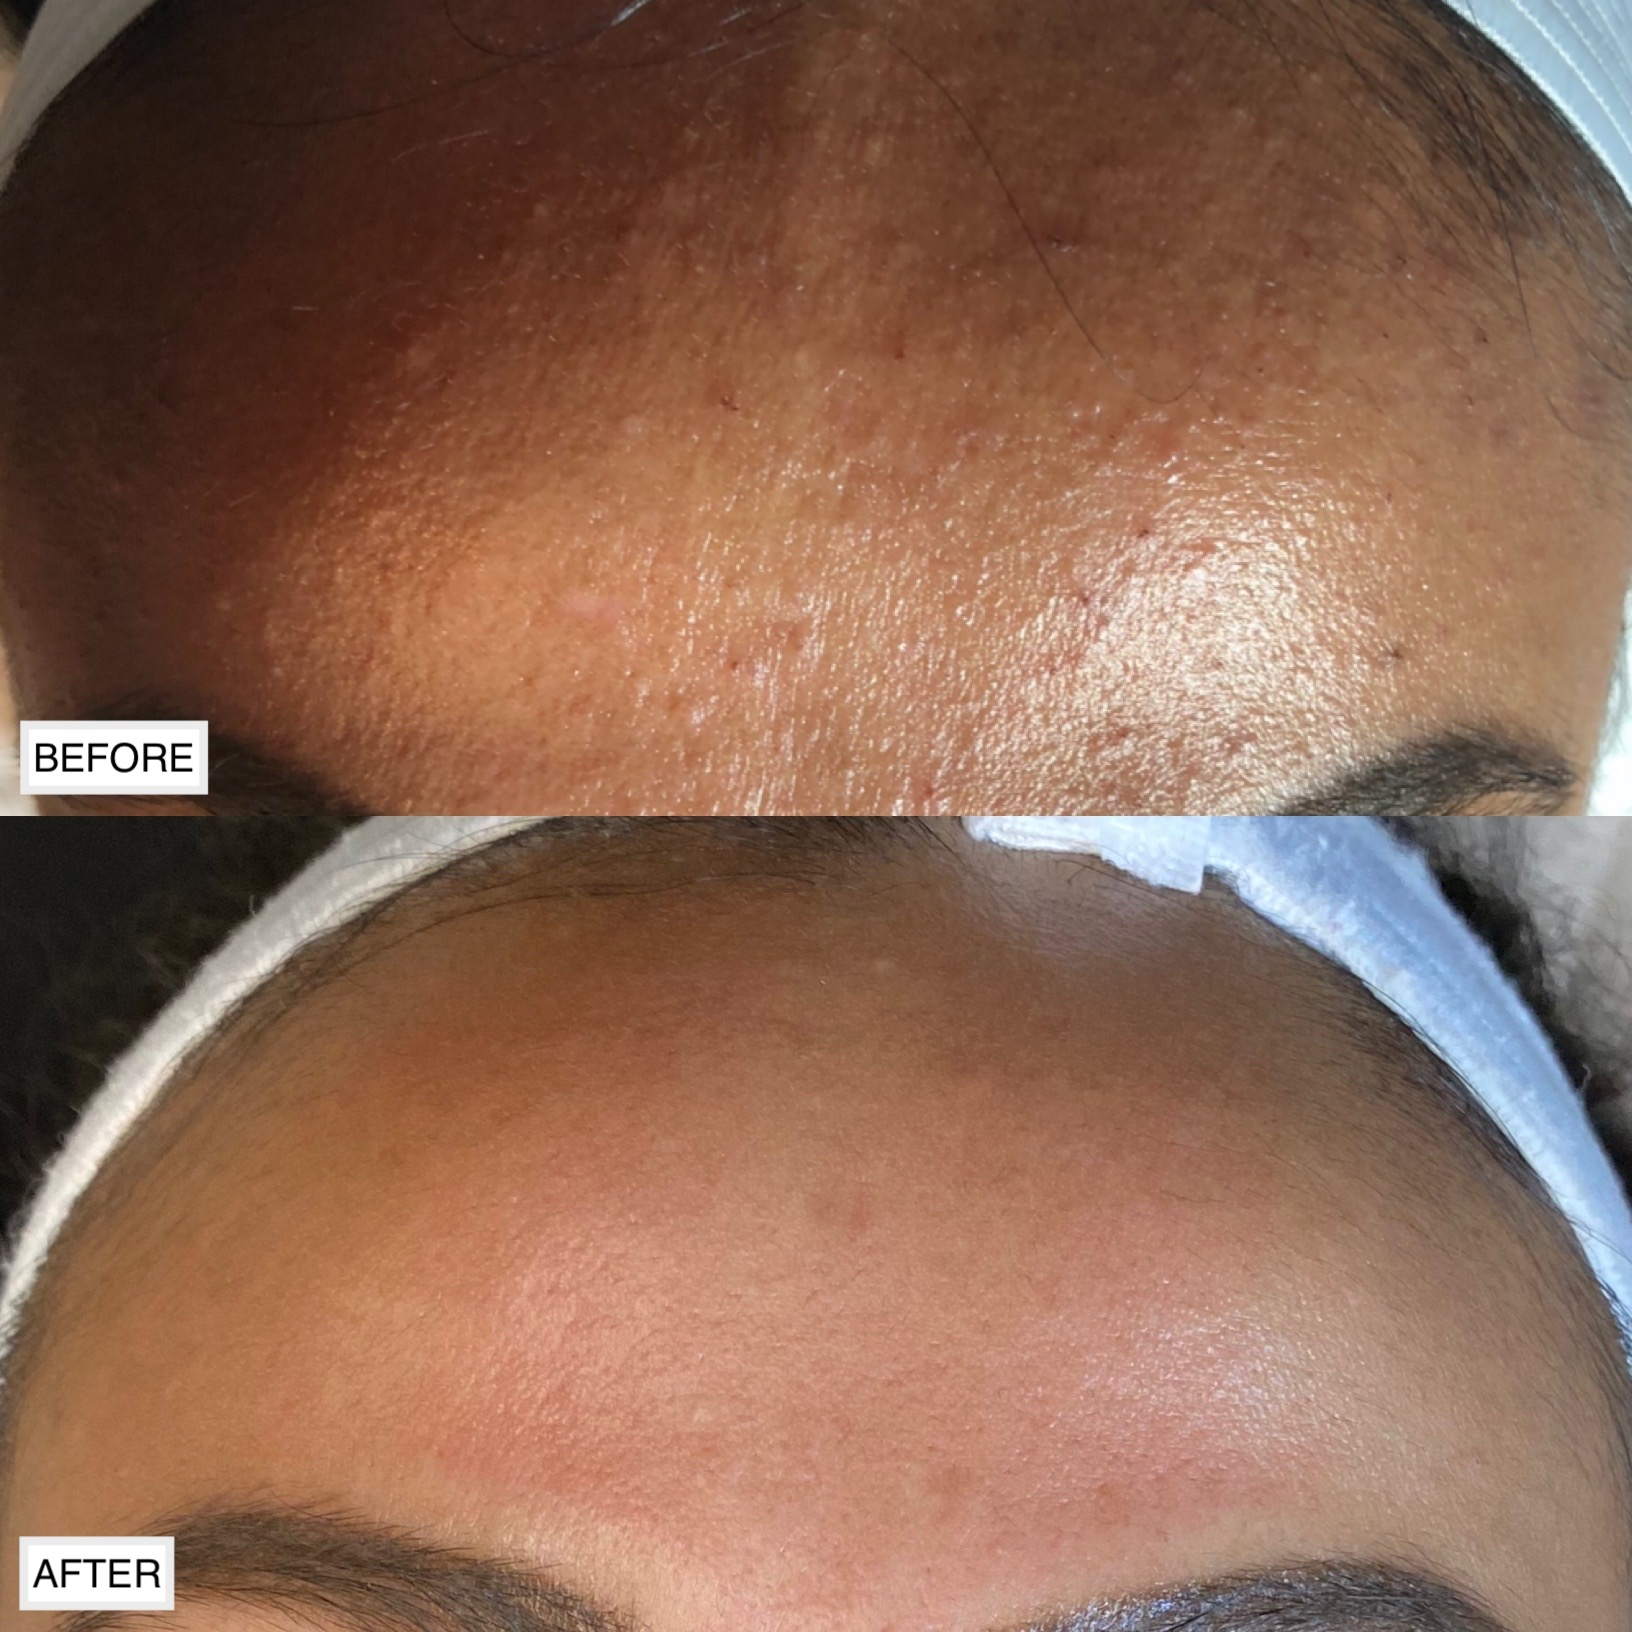 Before and after a series of facial treatments to clear this clients current congestion on the forehead and prevent future breakouts.